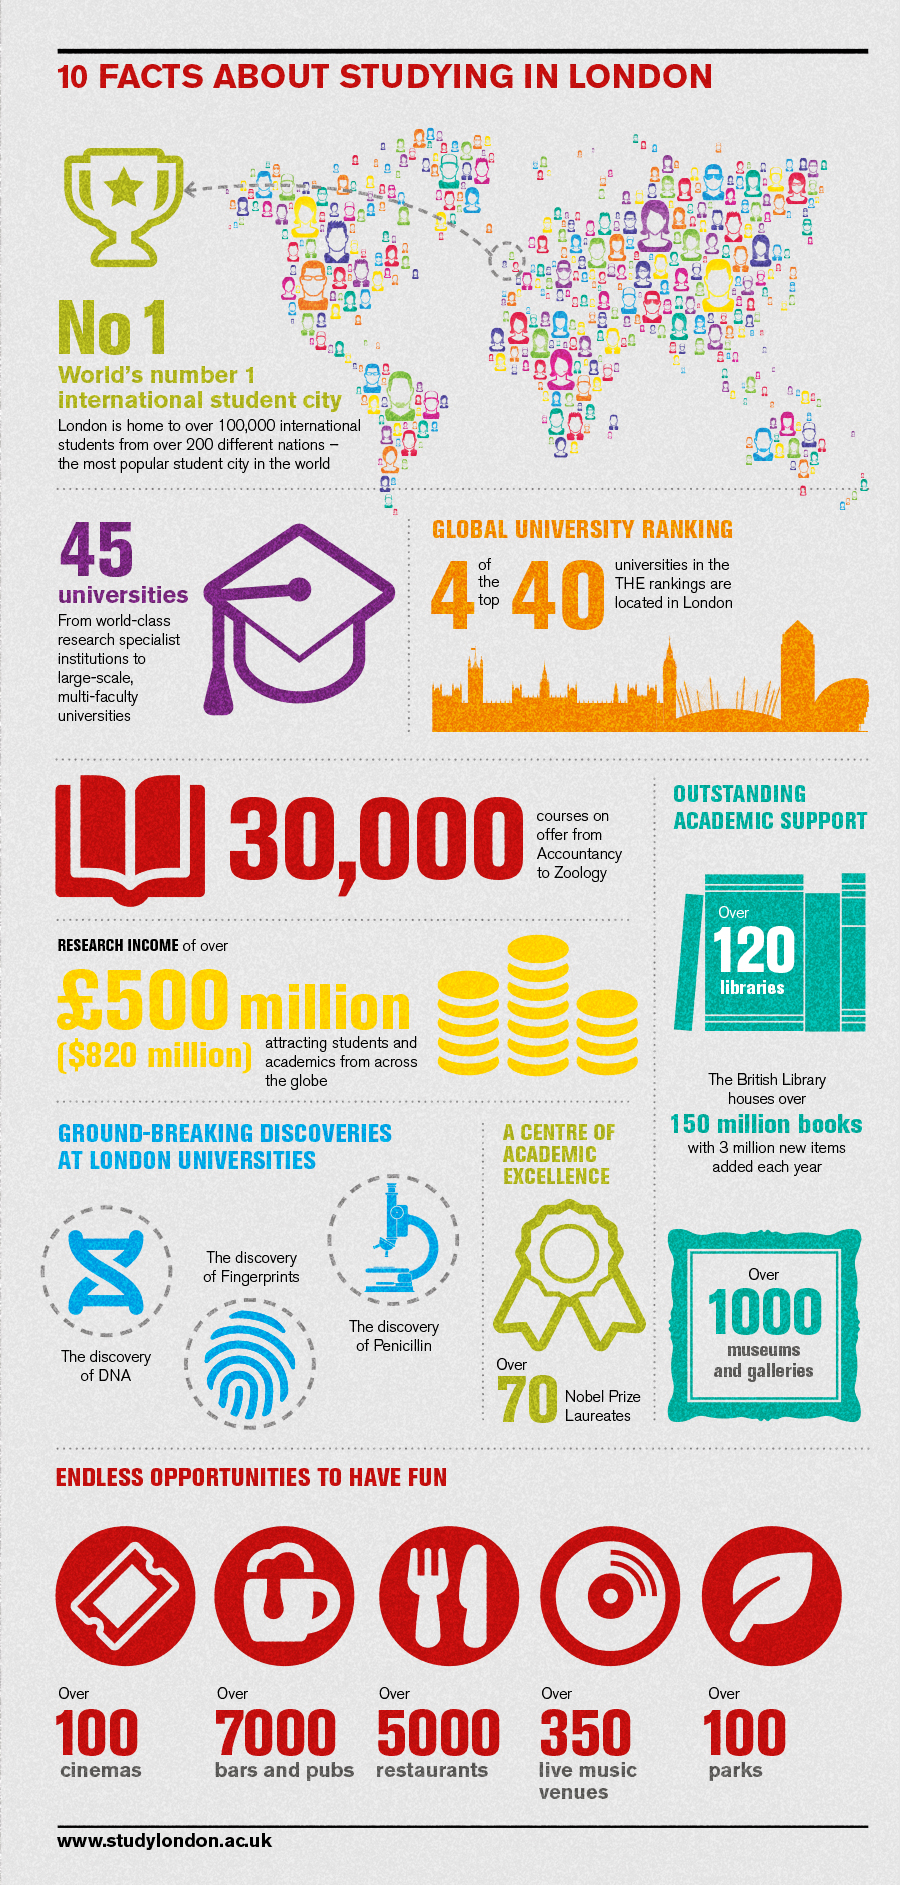 Uk Trends It 2013 additionally Top 10 Facts further What Is Content Marketing Strategy Definition And Seo Optimisation Services furthermore Ddr Vs Ddr2 Vs Ddr3 Vs Ddr4 Memory Technology additionally Five Staged Linear Infographic Timeline Diagram Flat Powerpoint Design. on google infographic